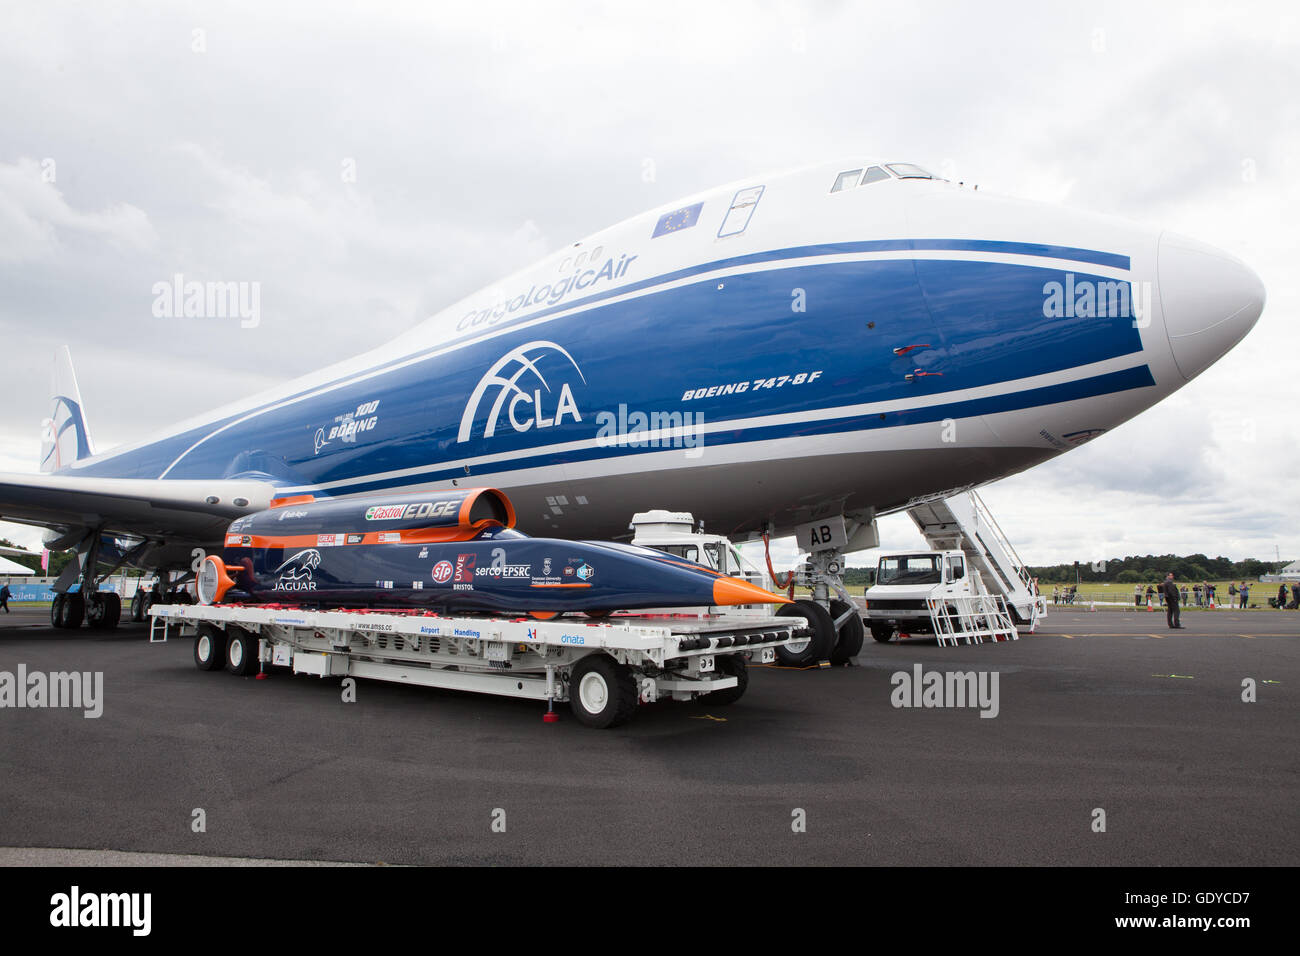 Blood hound speed record car next to Boeing 747 transporter aircraft - Stock Image